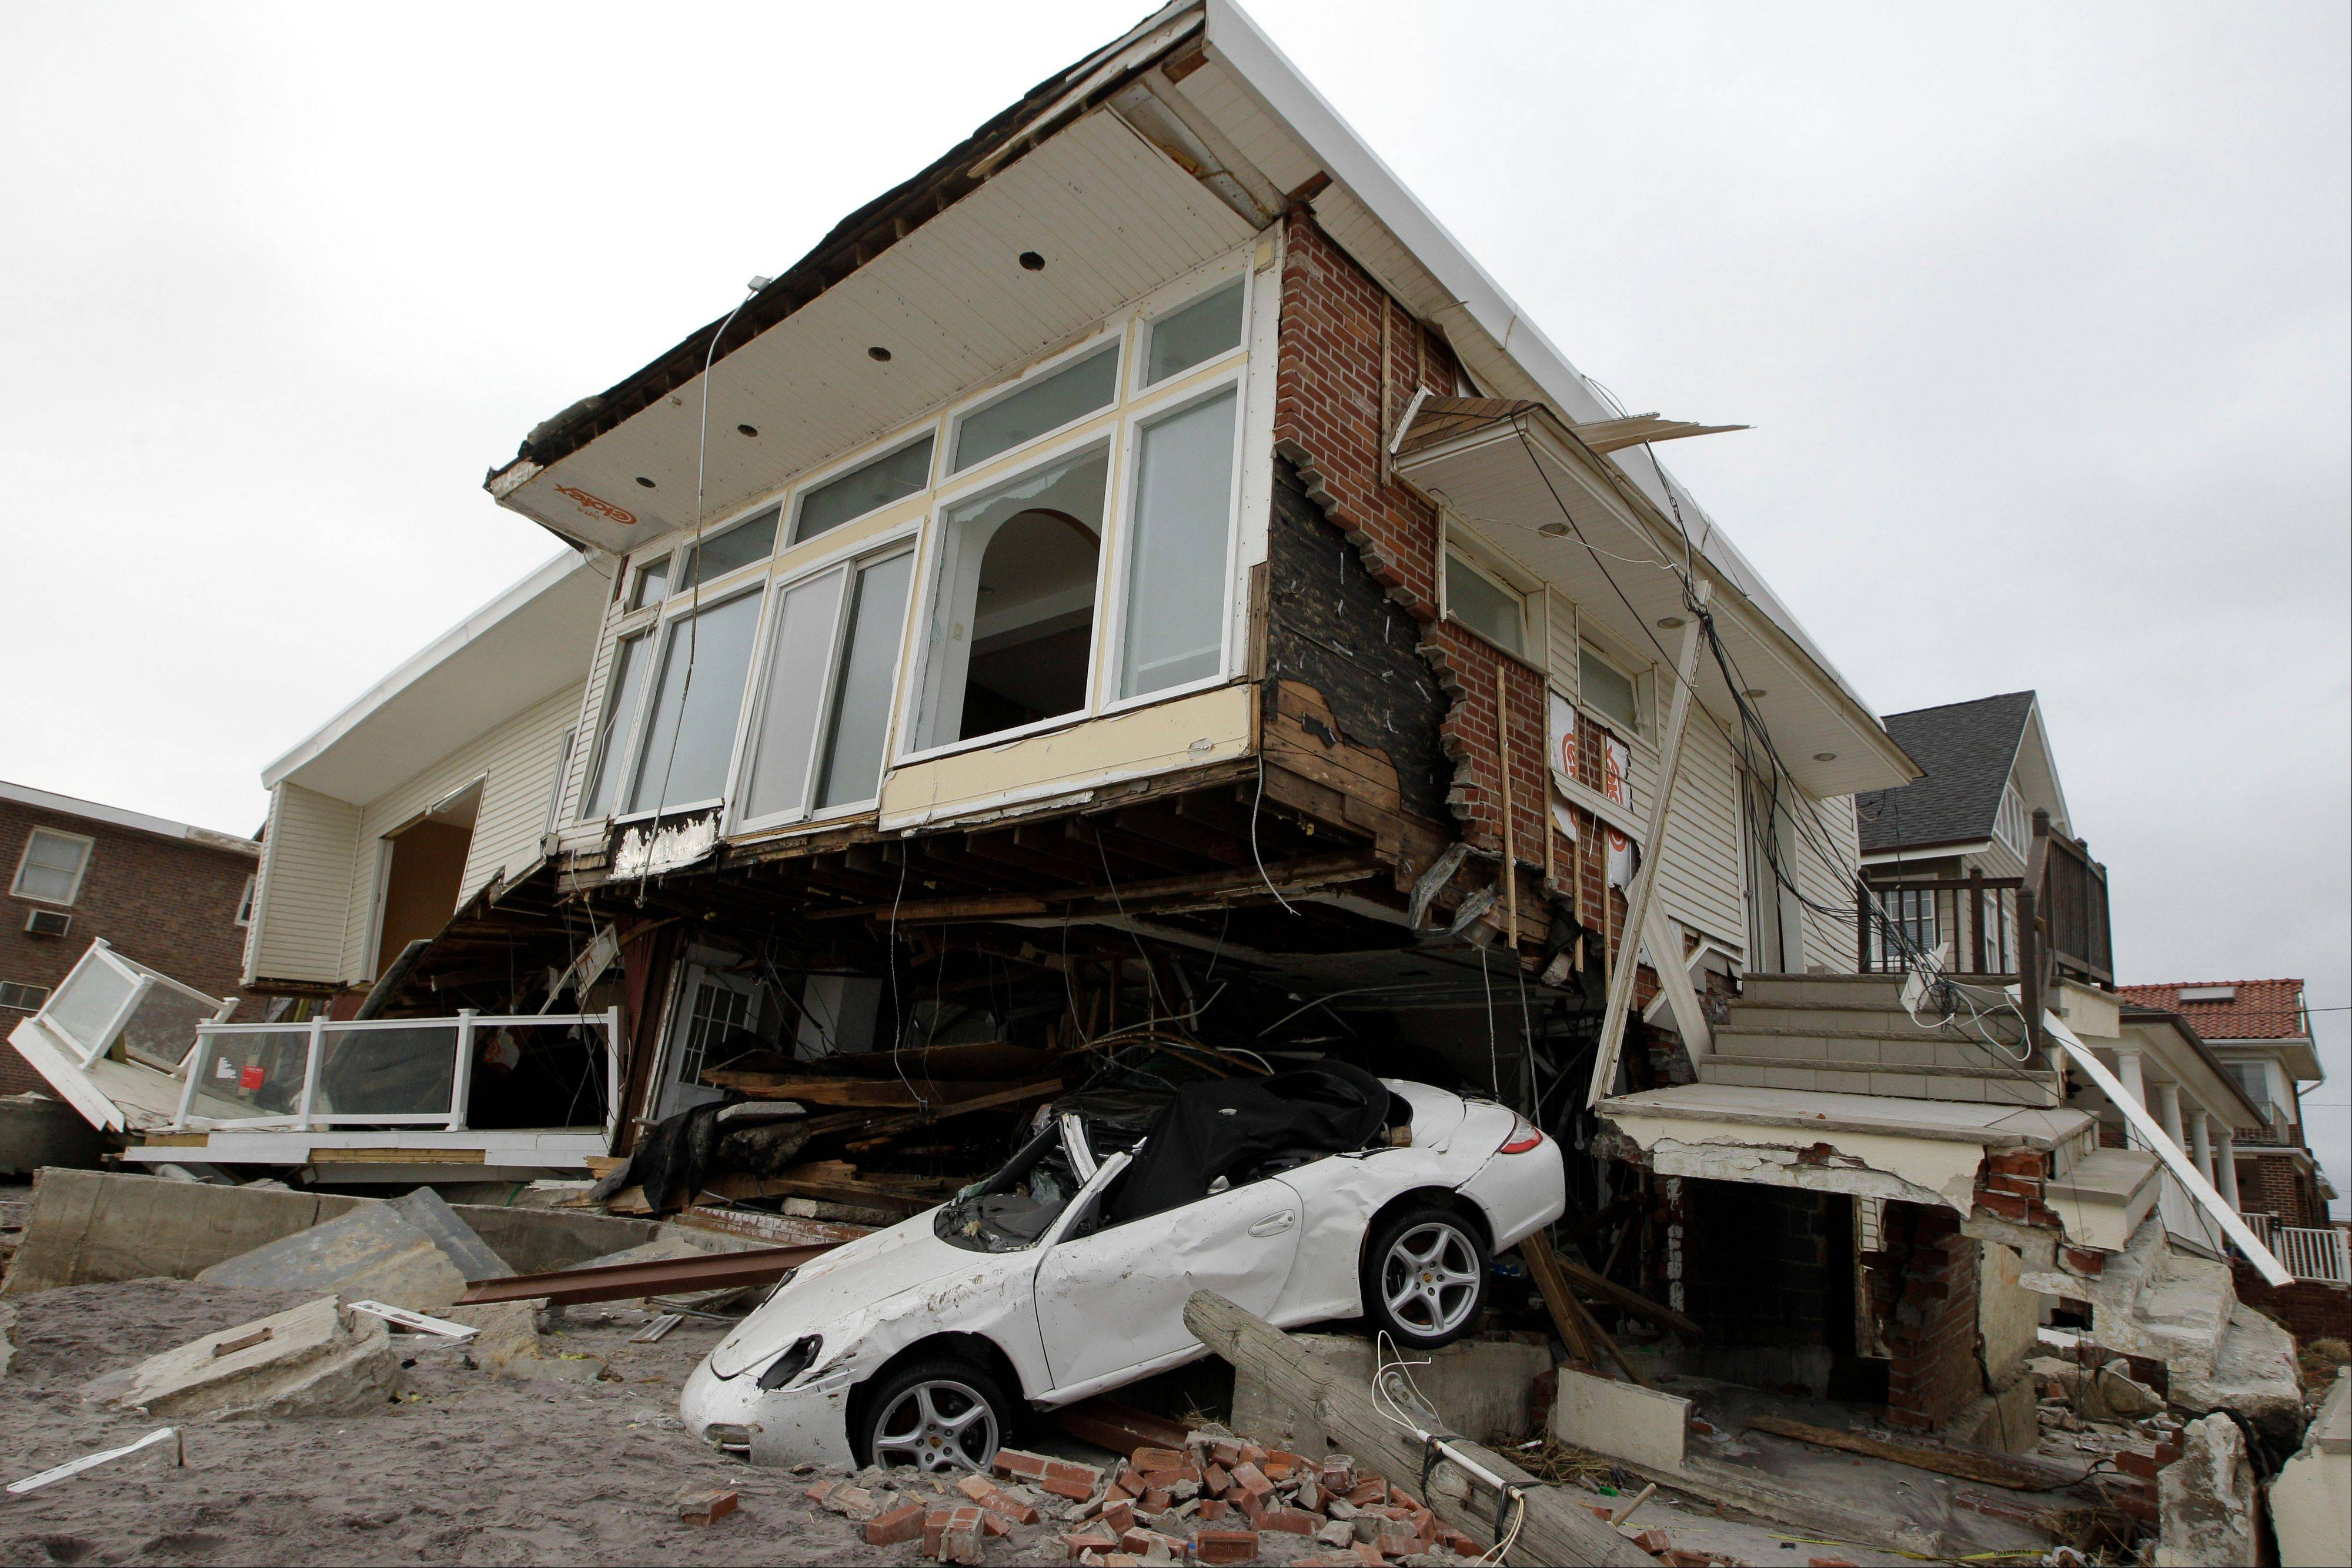 A beach side house, deemed uninhabitable by the New York City Department of Buildings, sits in ruins Monday in the Belle Harbor neighborhood of the Rockaways.